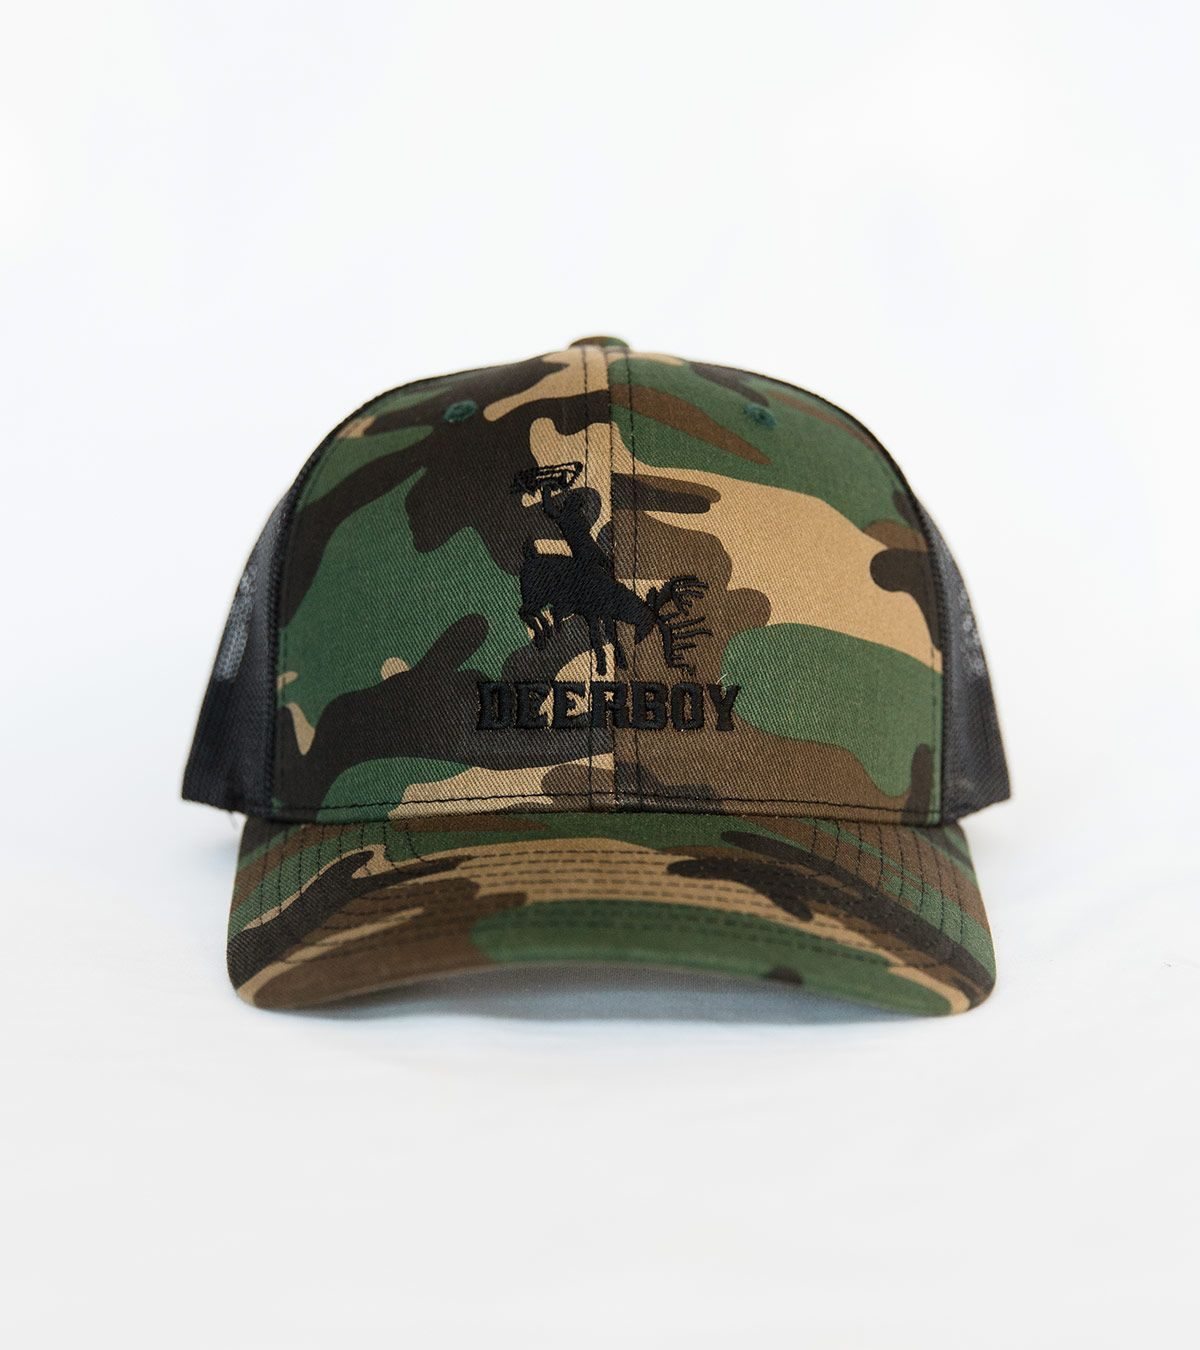 While cowboys wear wide-brimmed hats 1e0838601744